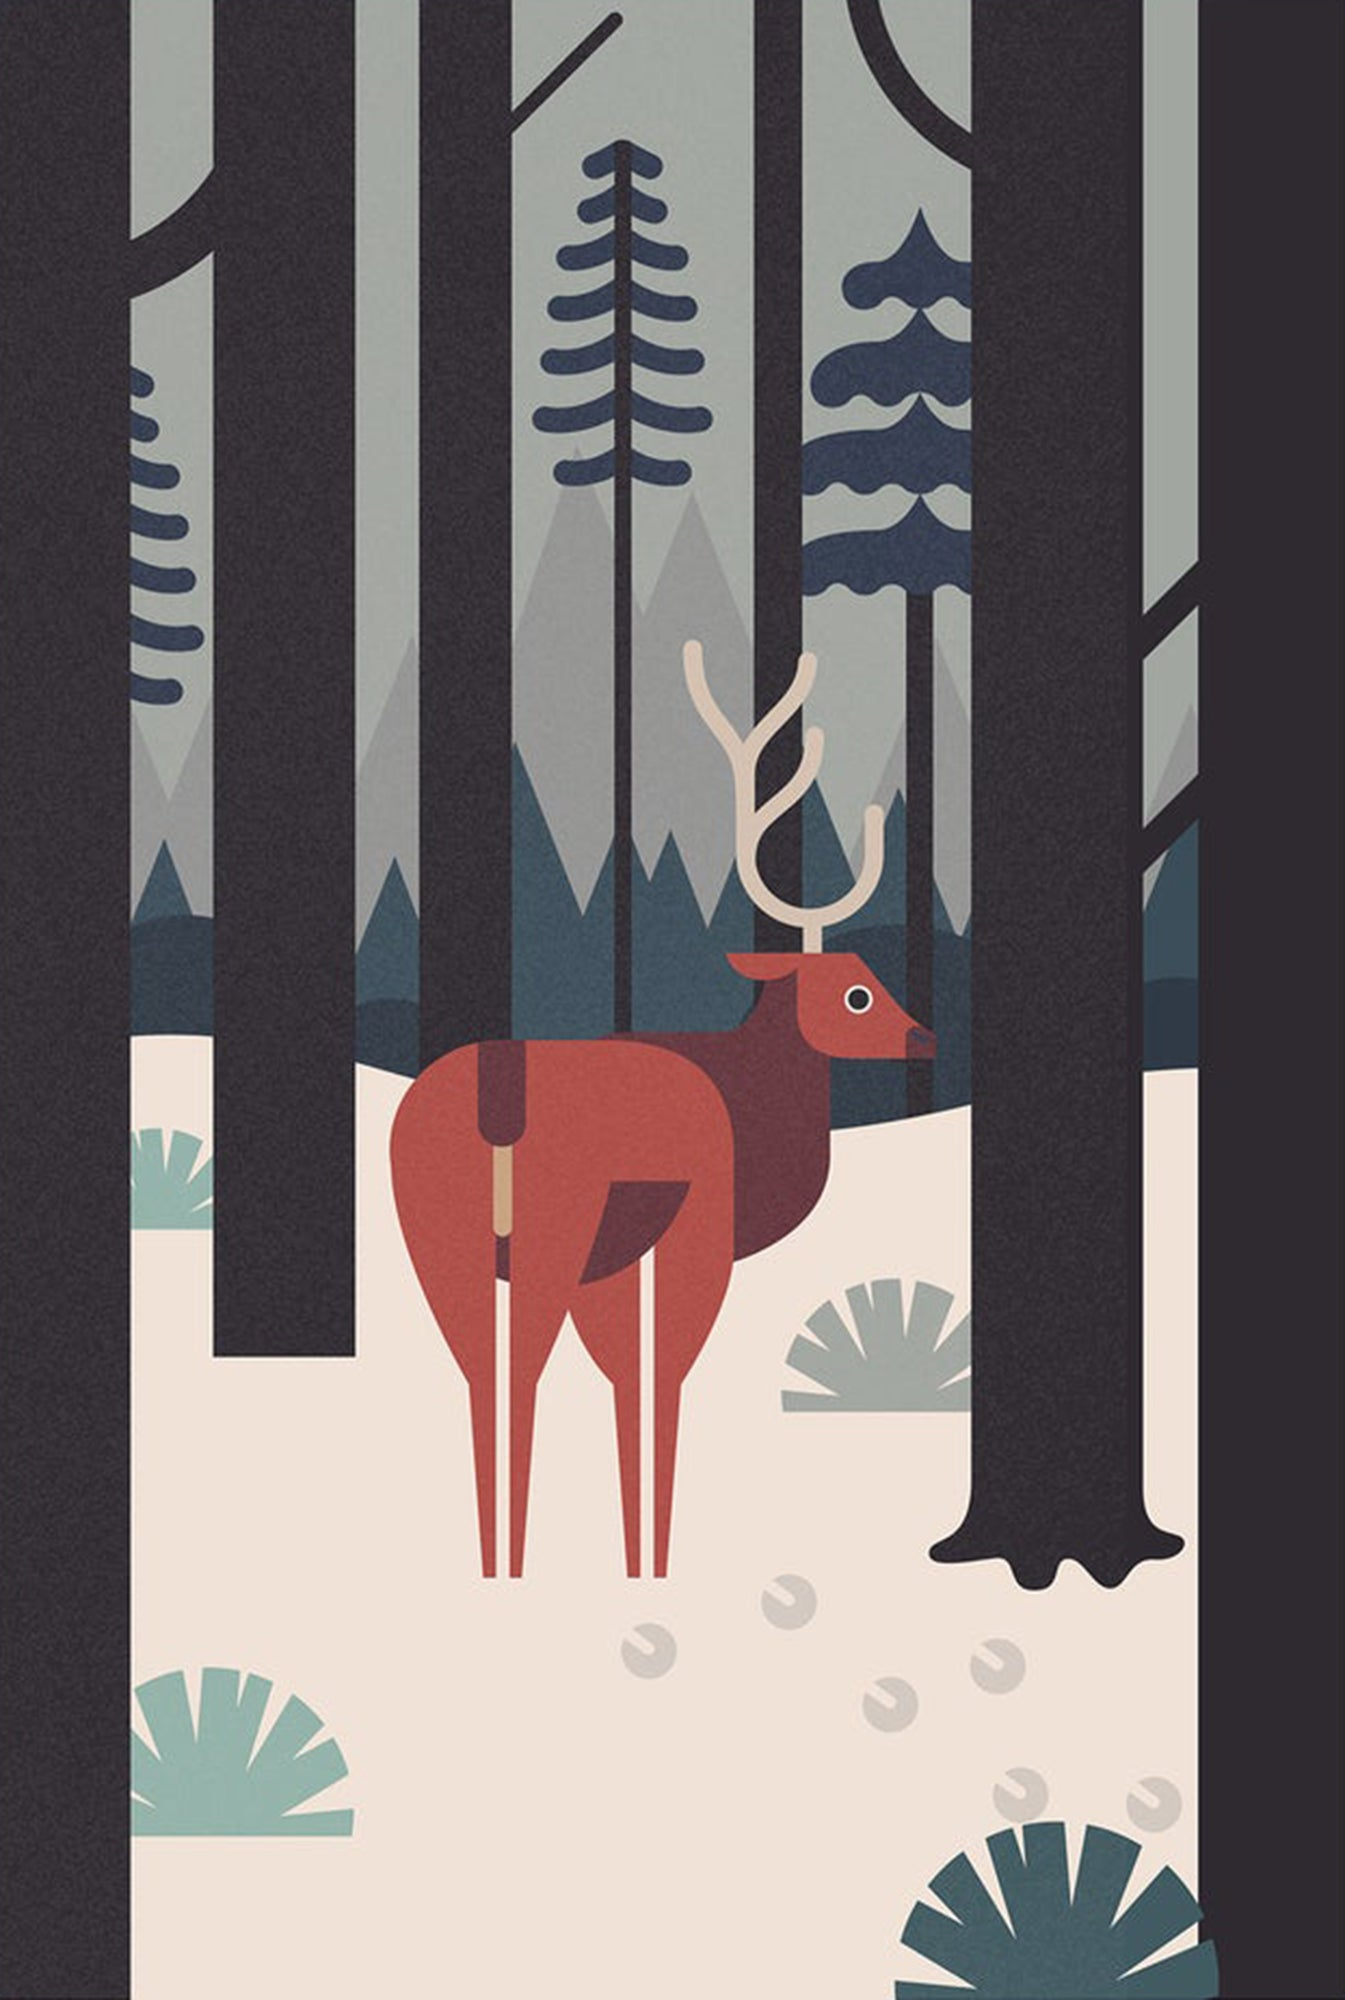 Deer greetings card - Inspired